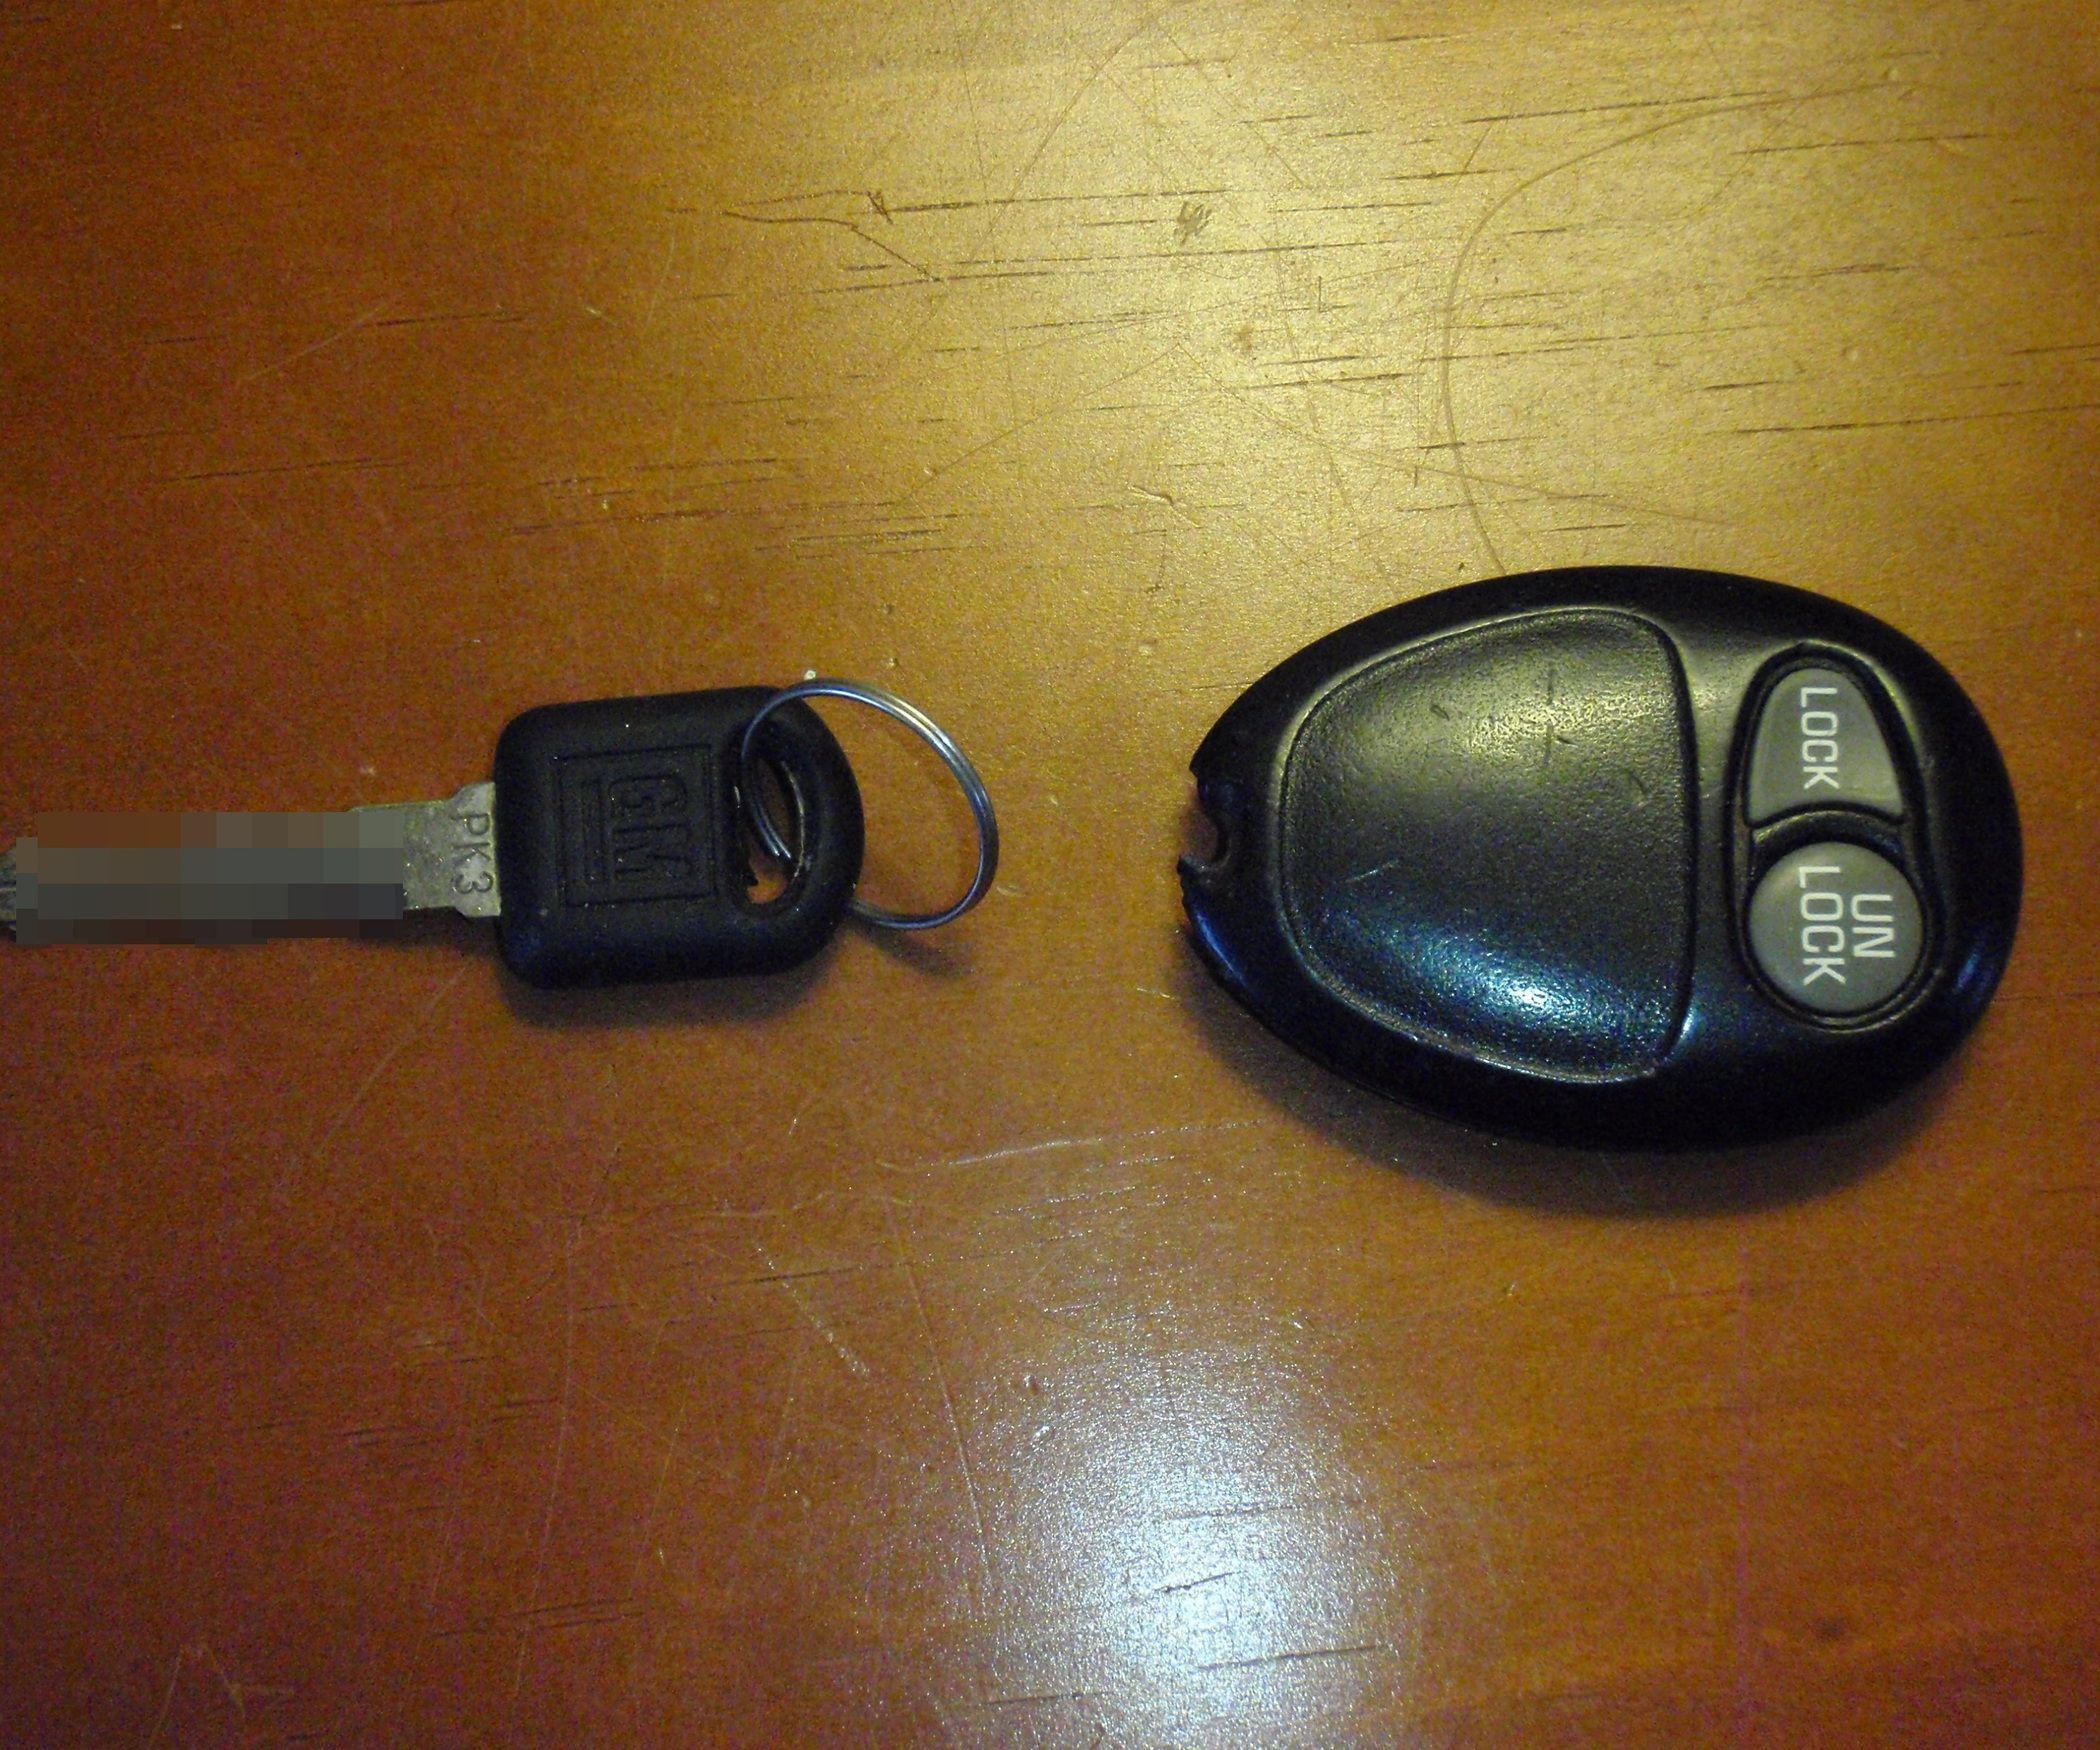 Gm Key Fob >> How To Fix A Broken Gm Key Fob Household Tips Car Key Fob Key